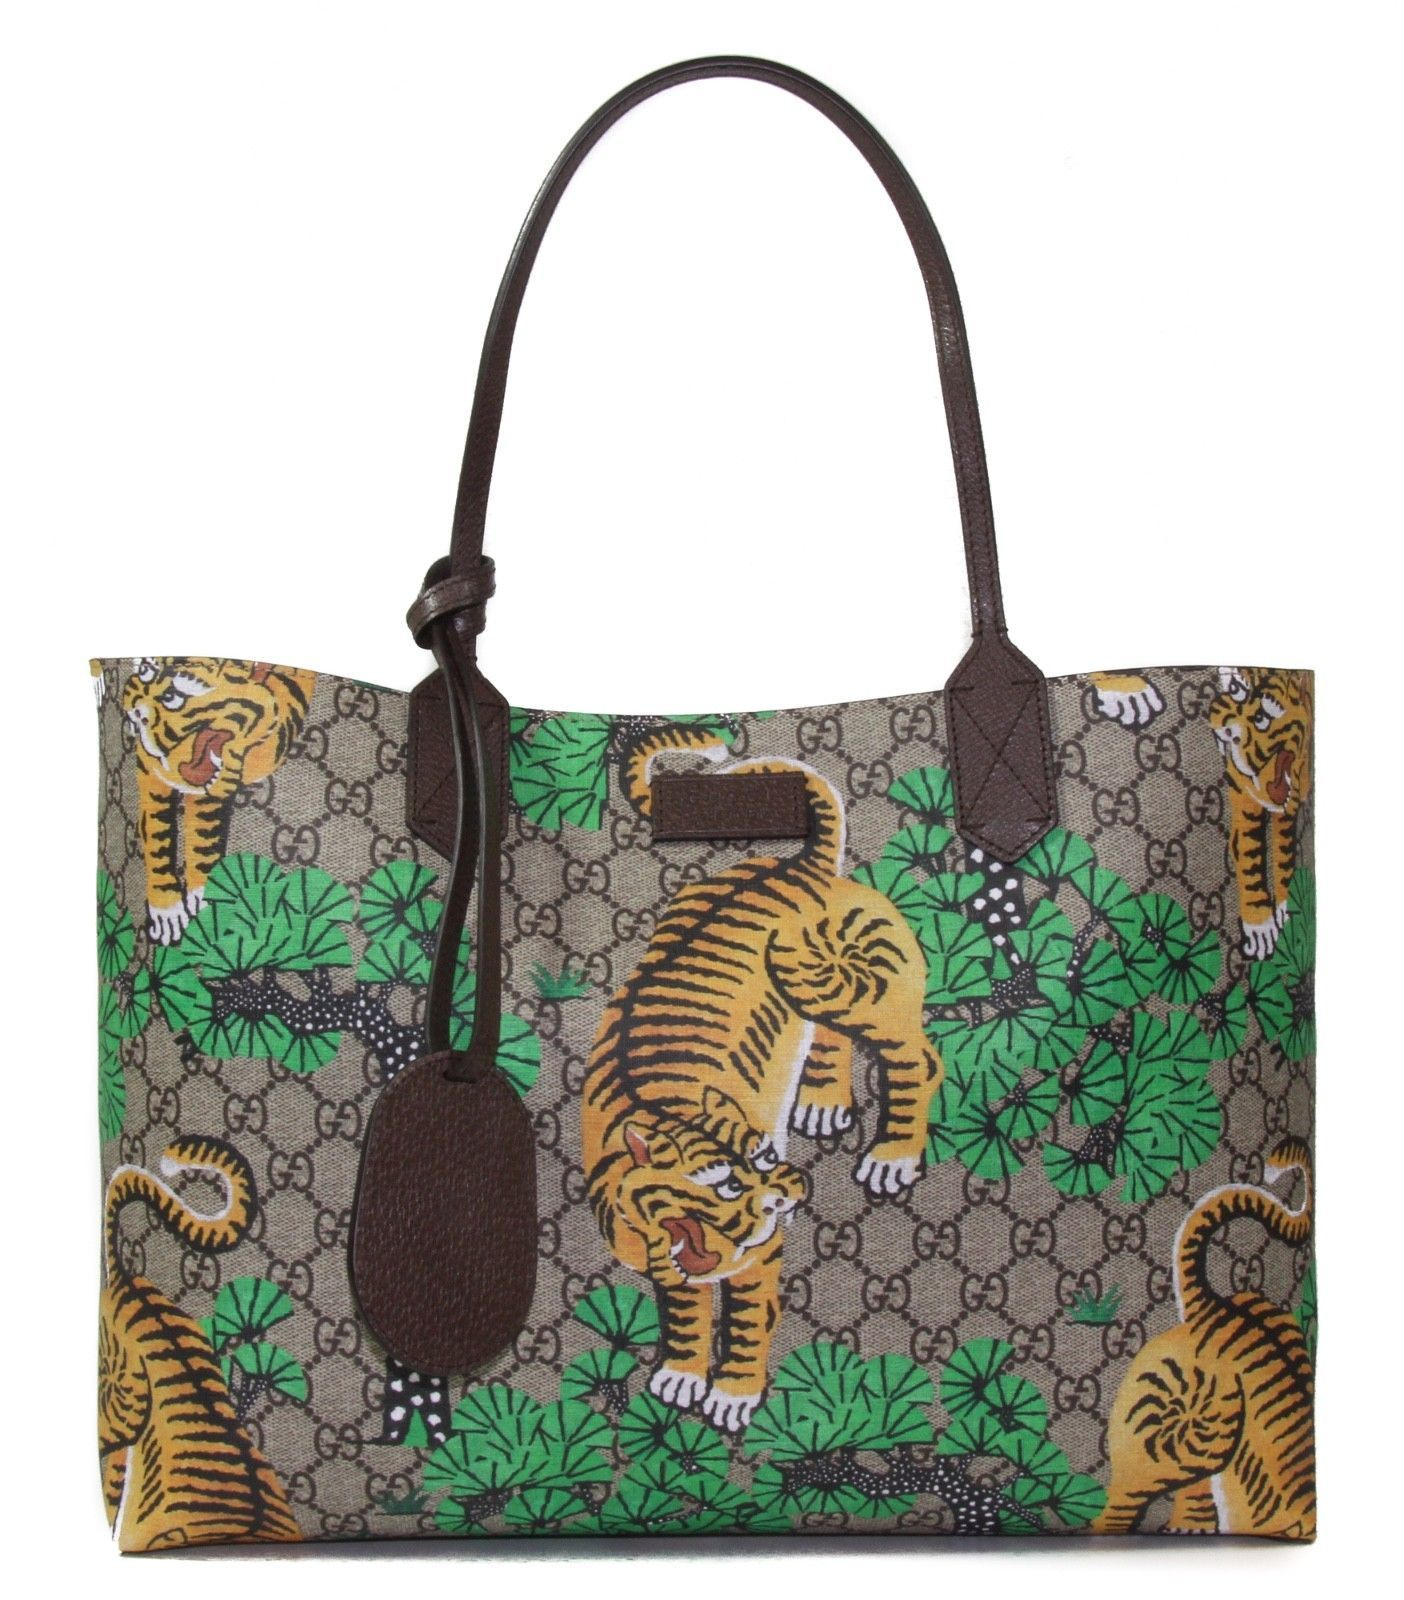 d756d626110f NWT GUCCI 412096 Bengal GG Supreme Tote Bag, and 50 similar items. 57